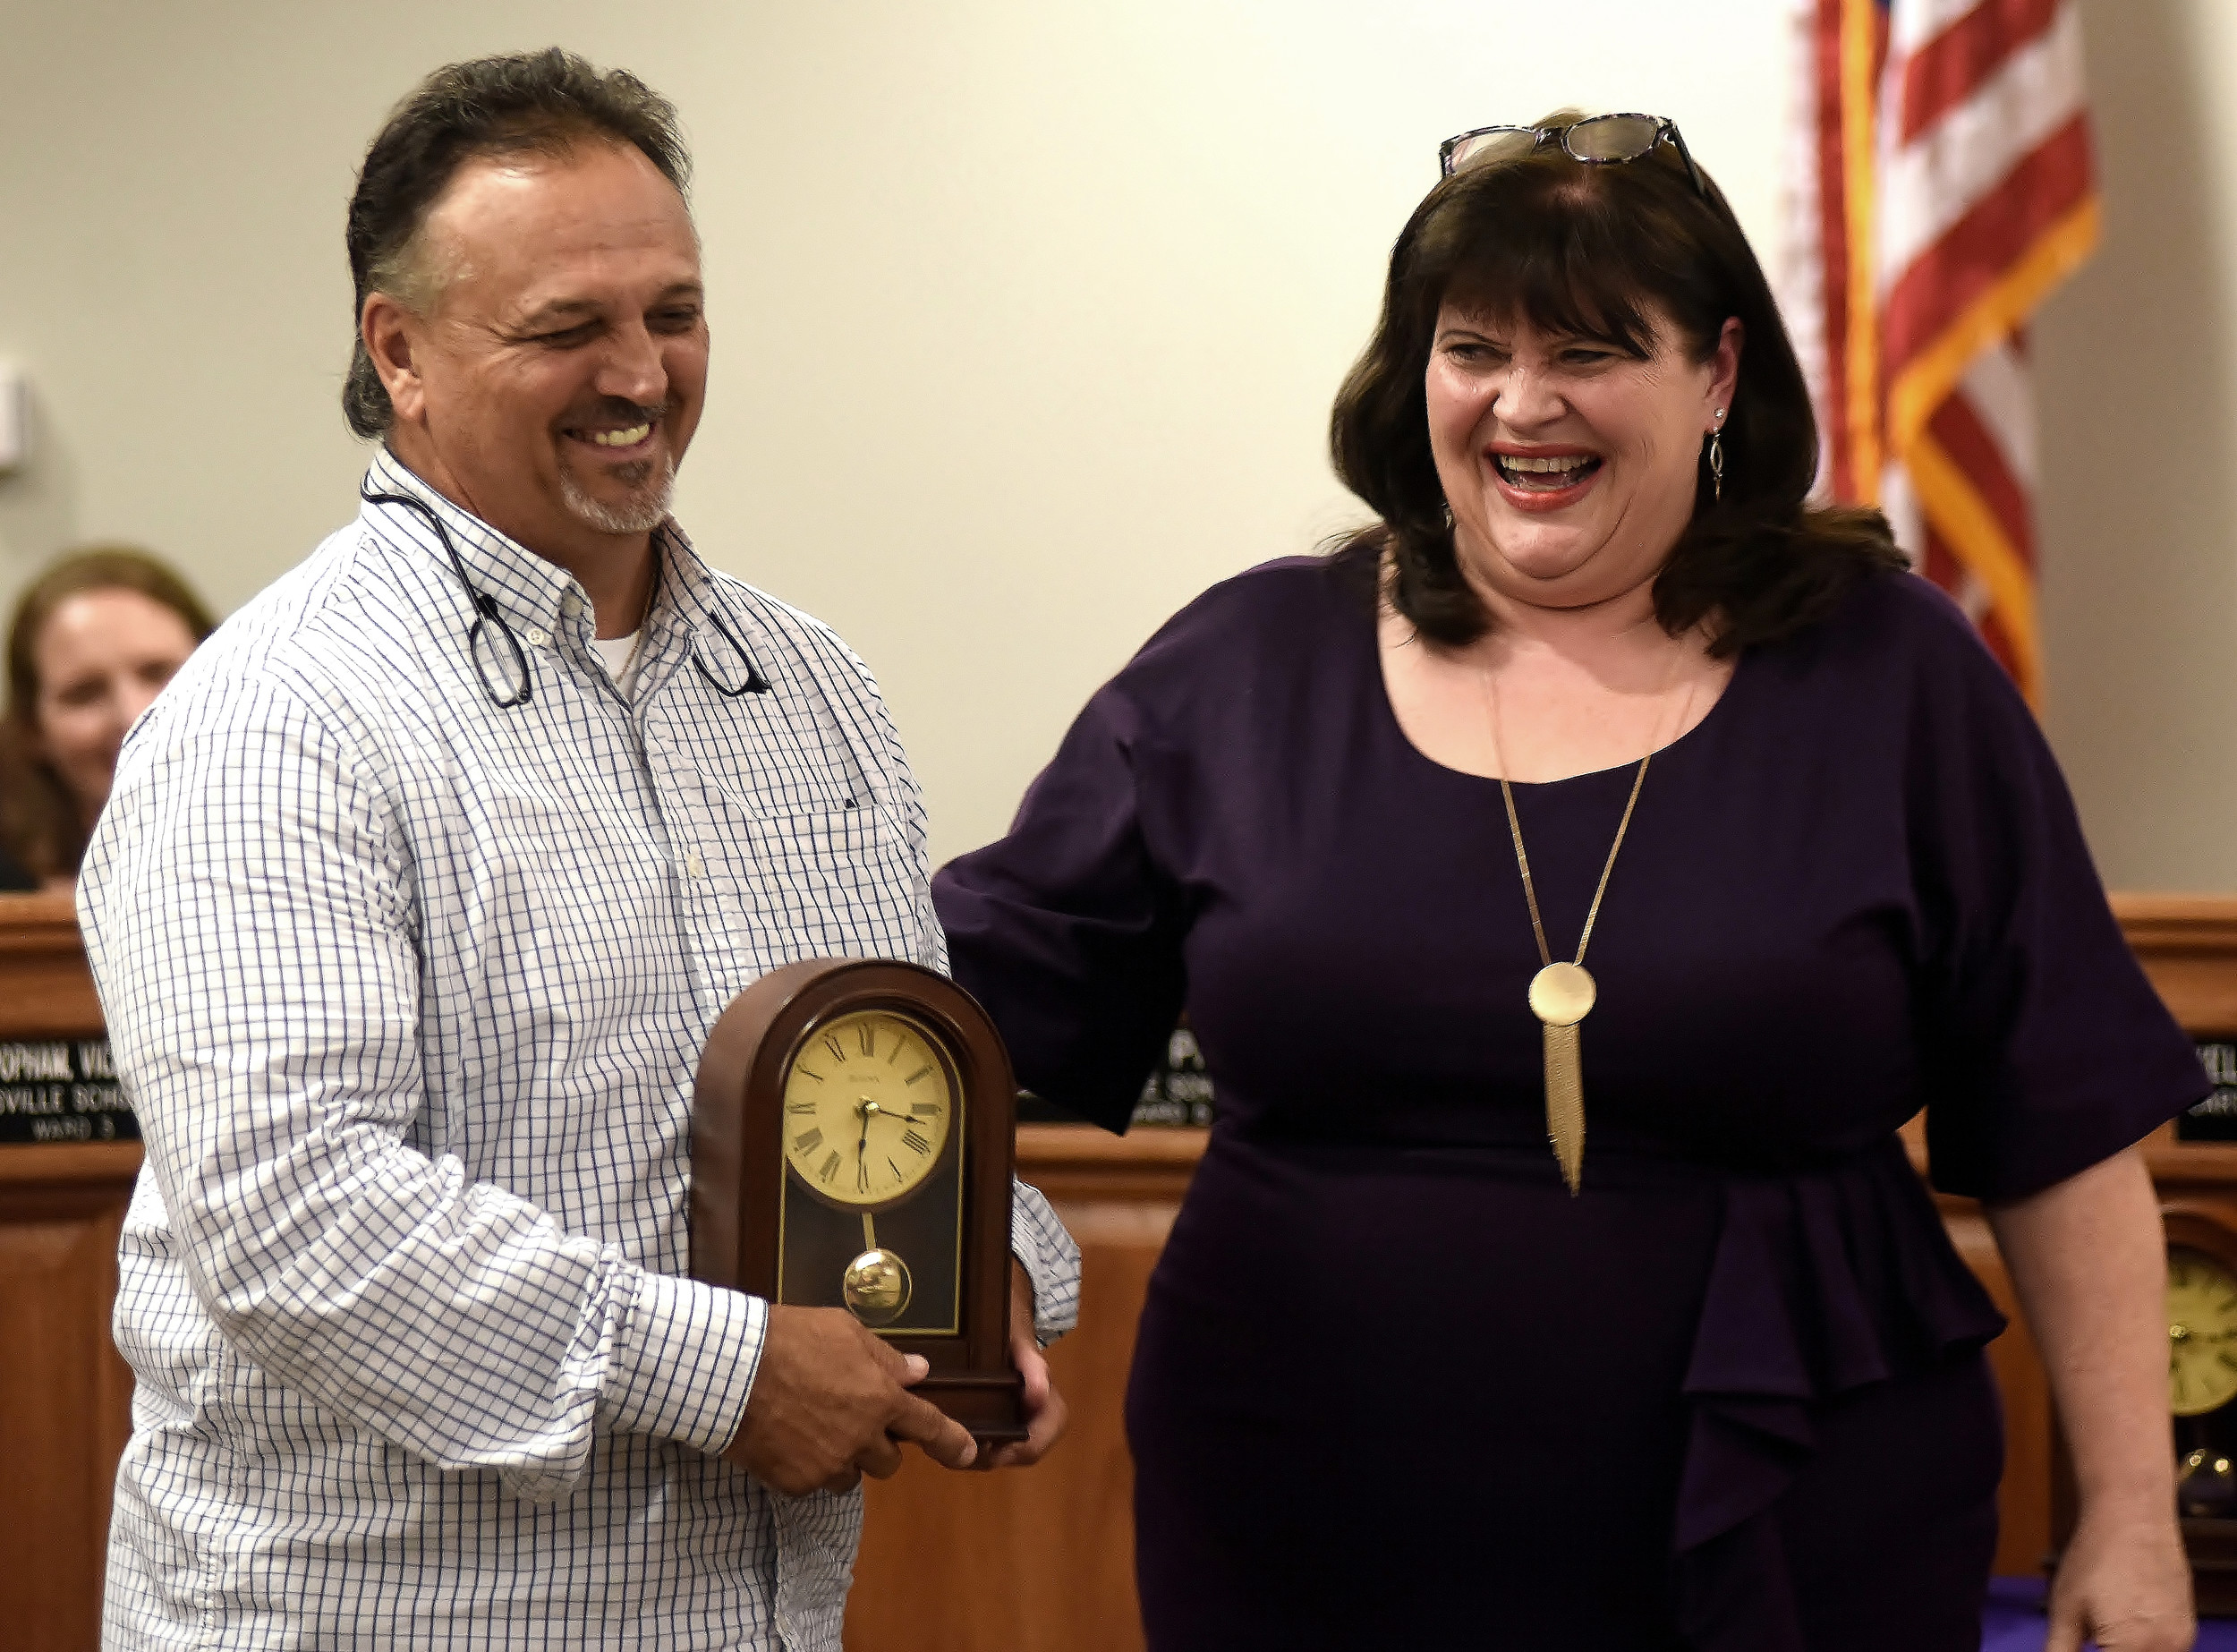 Cartersville School Board president Kelley Dial, right, shares a laugh with Cartersville High School wrestling coach Garvin Edwards as she presents him with his retirement clock at Monday's school board meeting.Edwards, with 30 years of service in education between his time with Cartersville and Armuchee, was recognized along with 17 other retirees at the meeting.